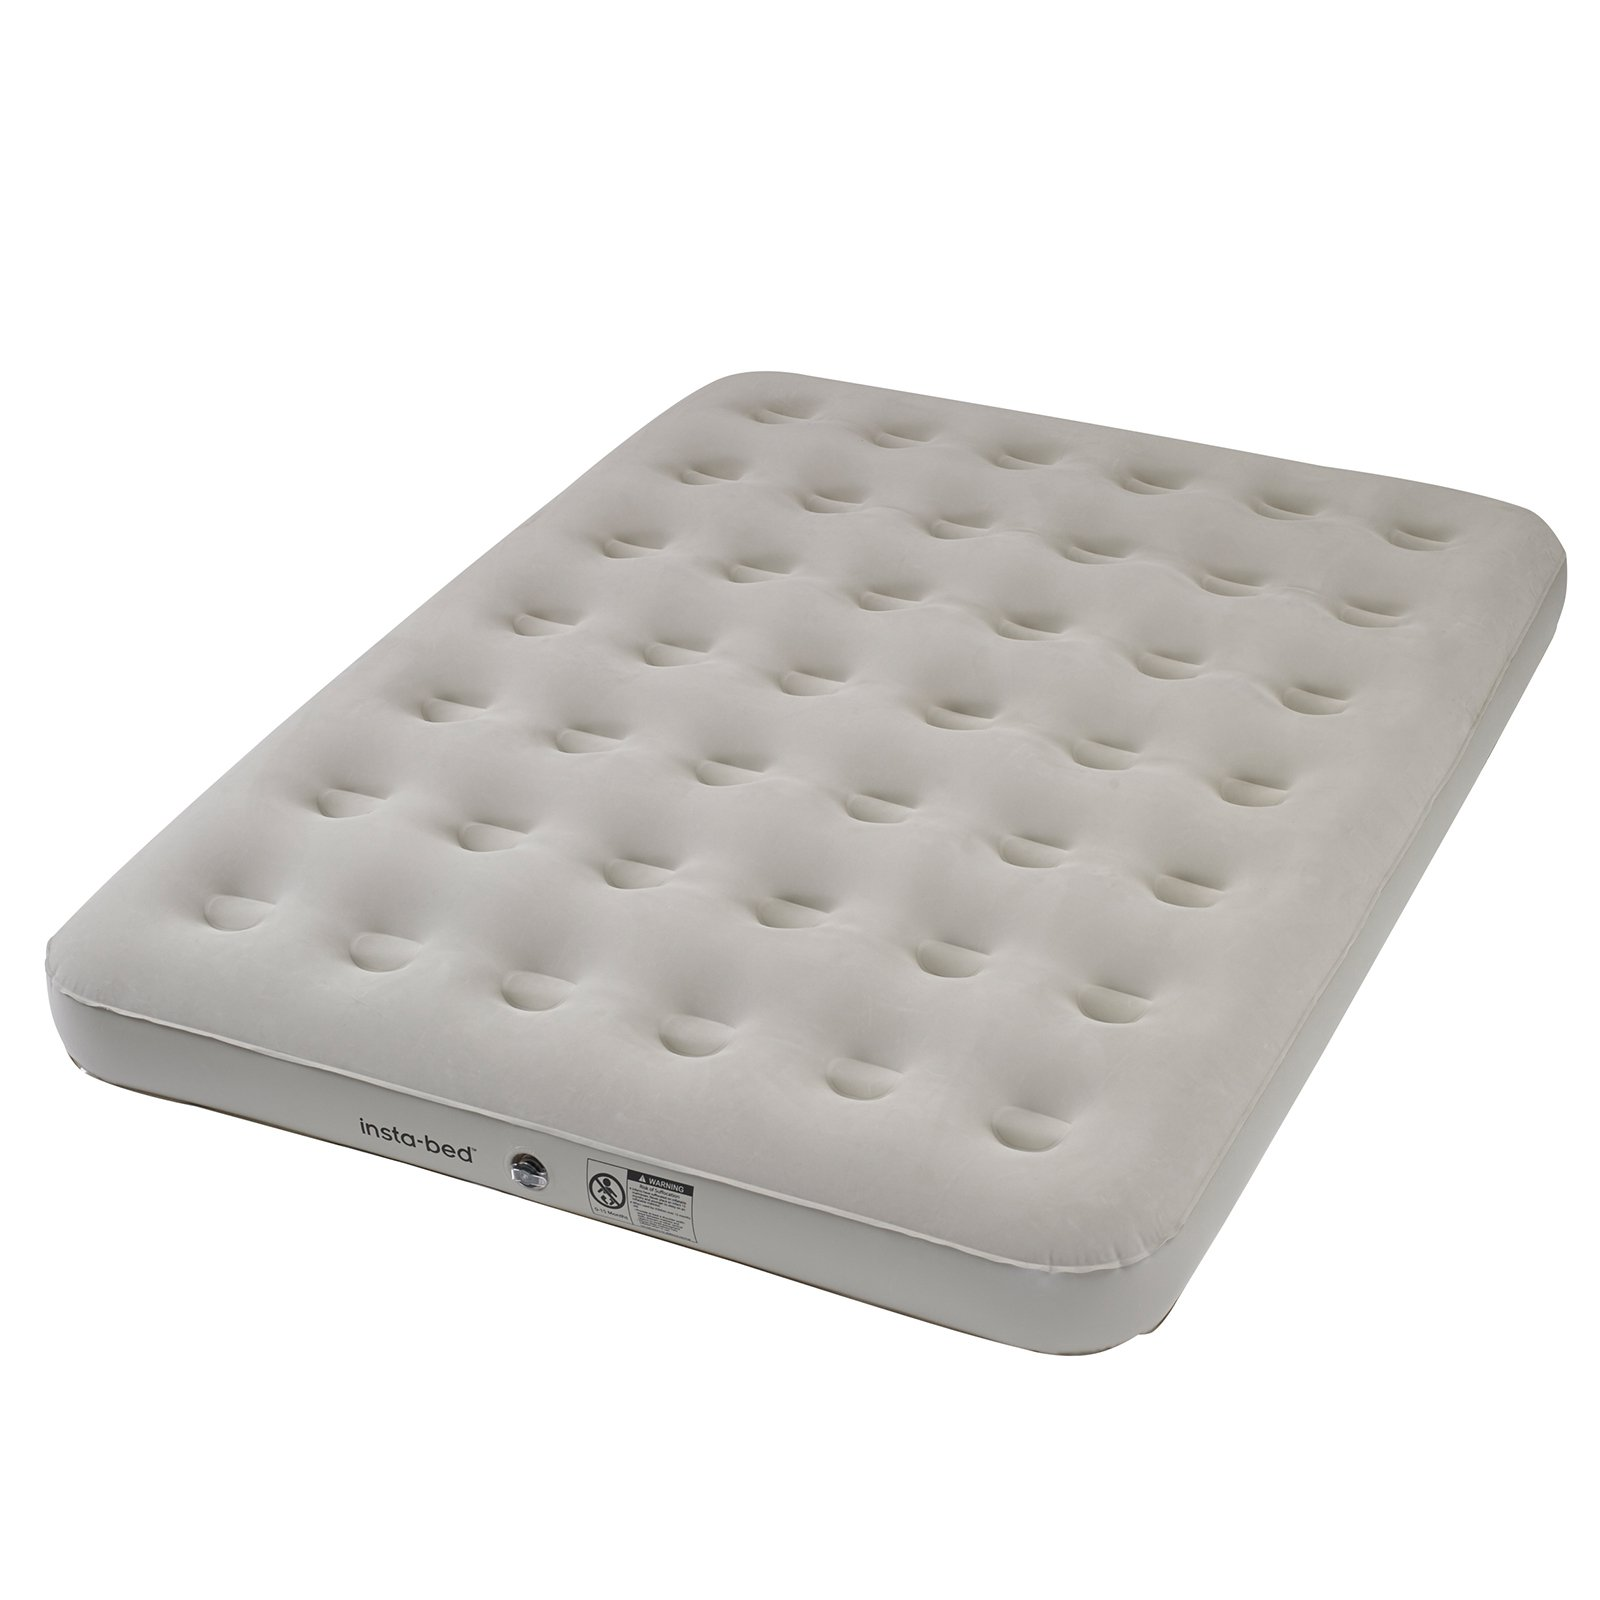 Wenzel Insta-Bed 9 in. Airbed with External Dual Power Pu...